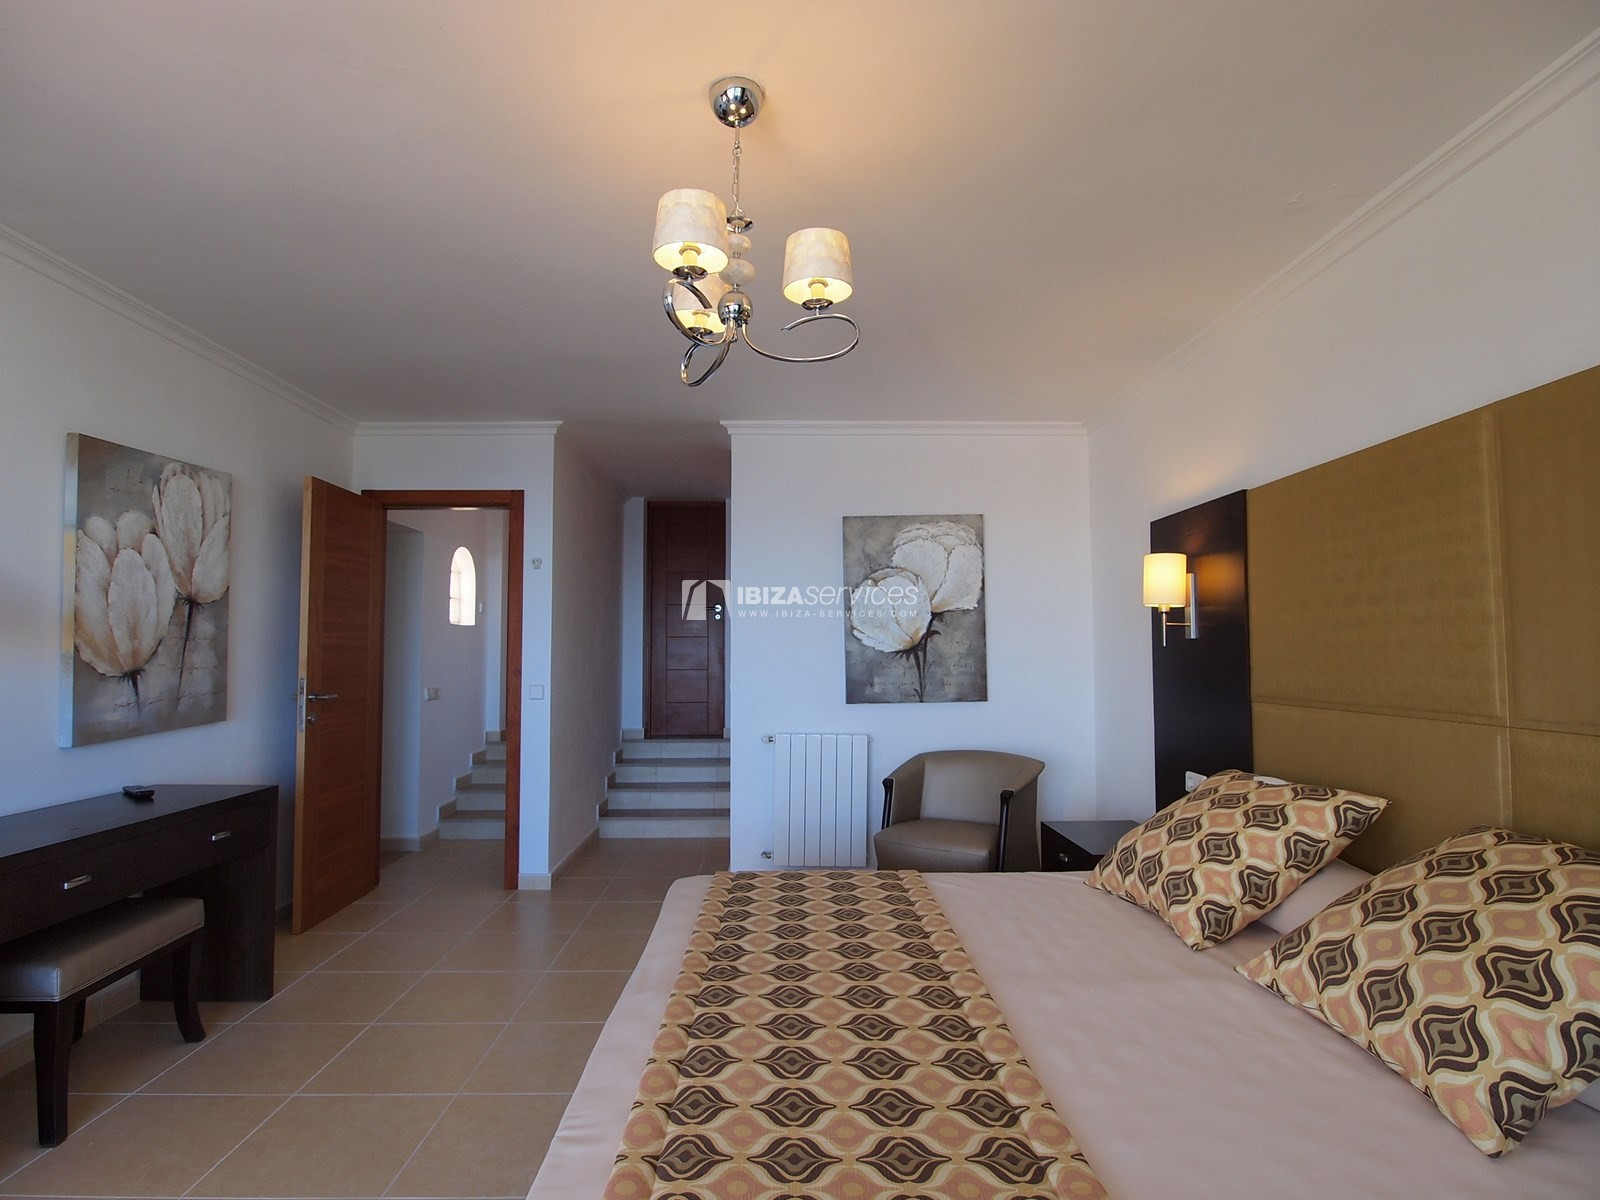 7 bedroom villa overlooking the sea Cala Moli perspectiva 18